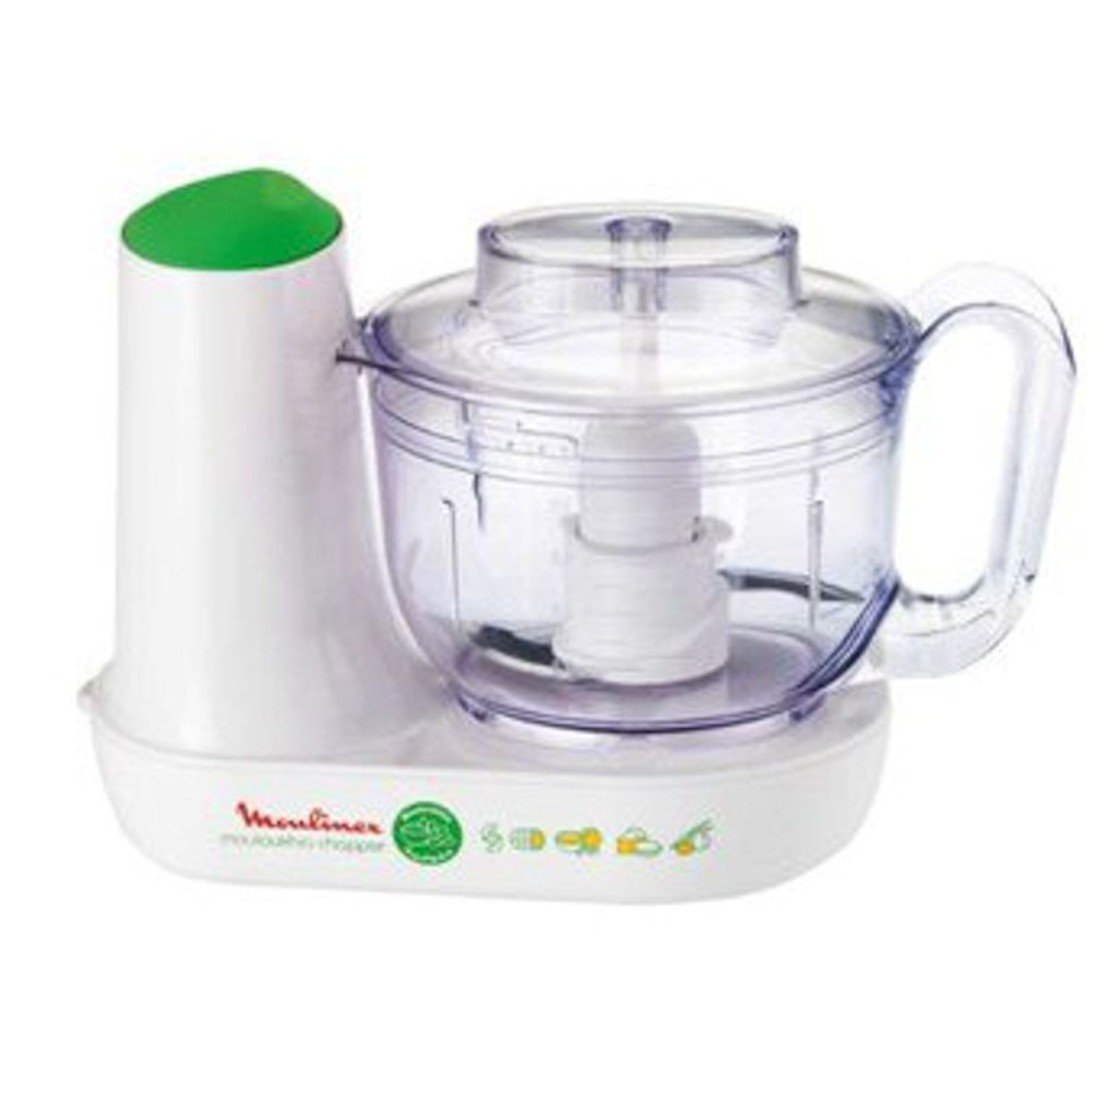 Moulinex - Ad811 mini chopper: Amazon.es: Hogar